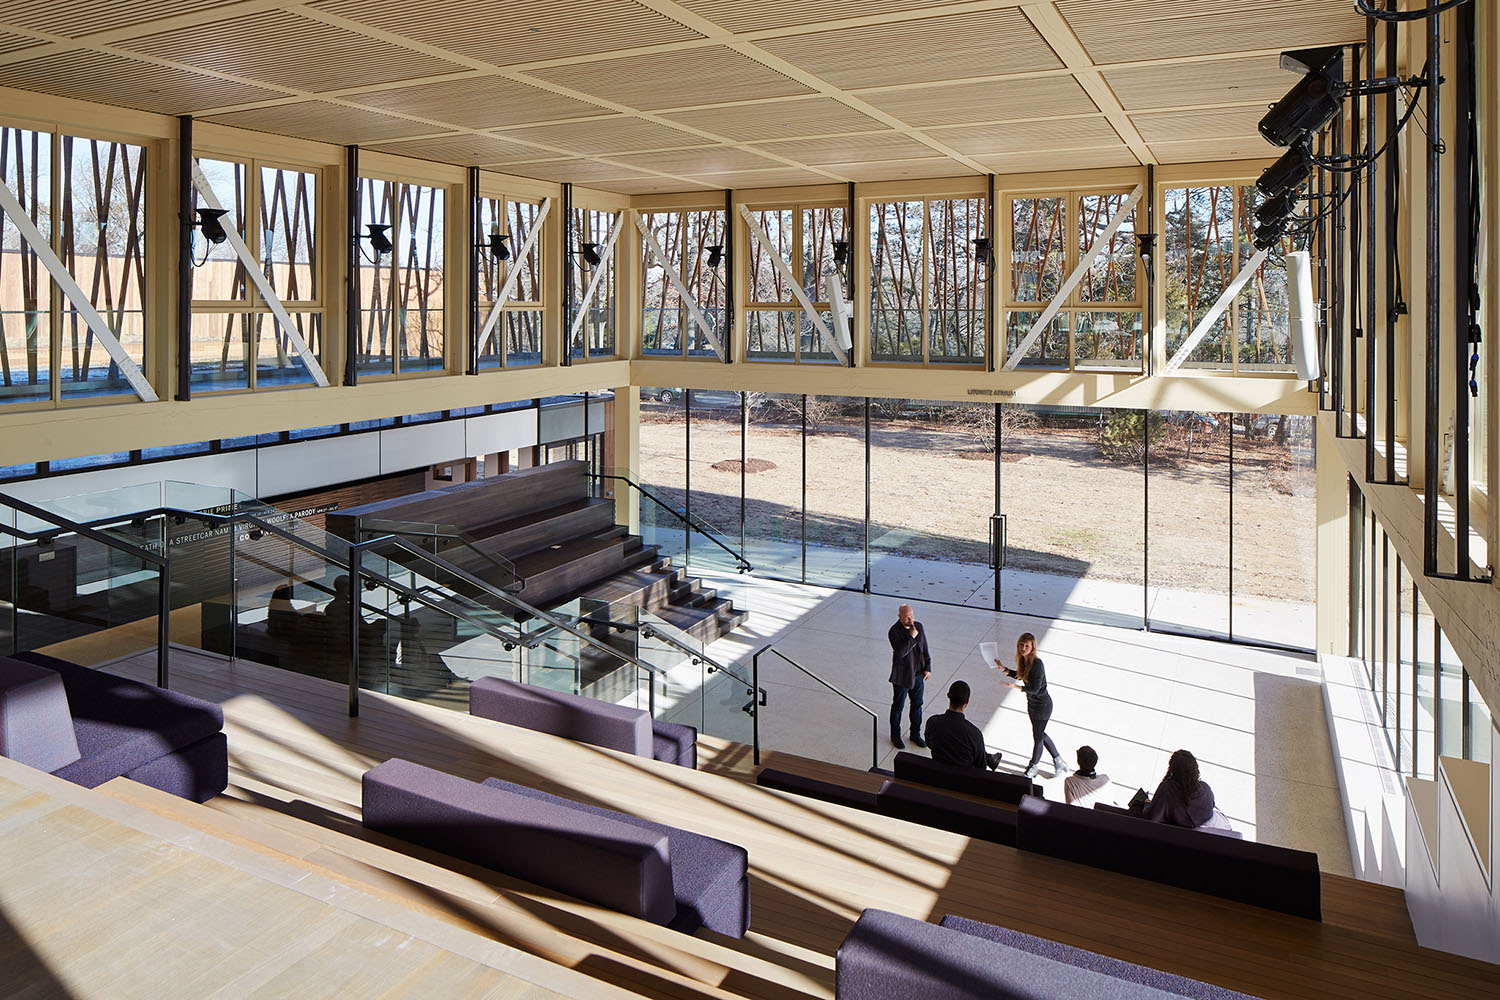 The lobby is designed to accommodate the spoken word, providing opportunities for informal performances, events, and educational programs. Acoustic wood ceiling panels and theatrical lights further its abi